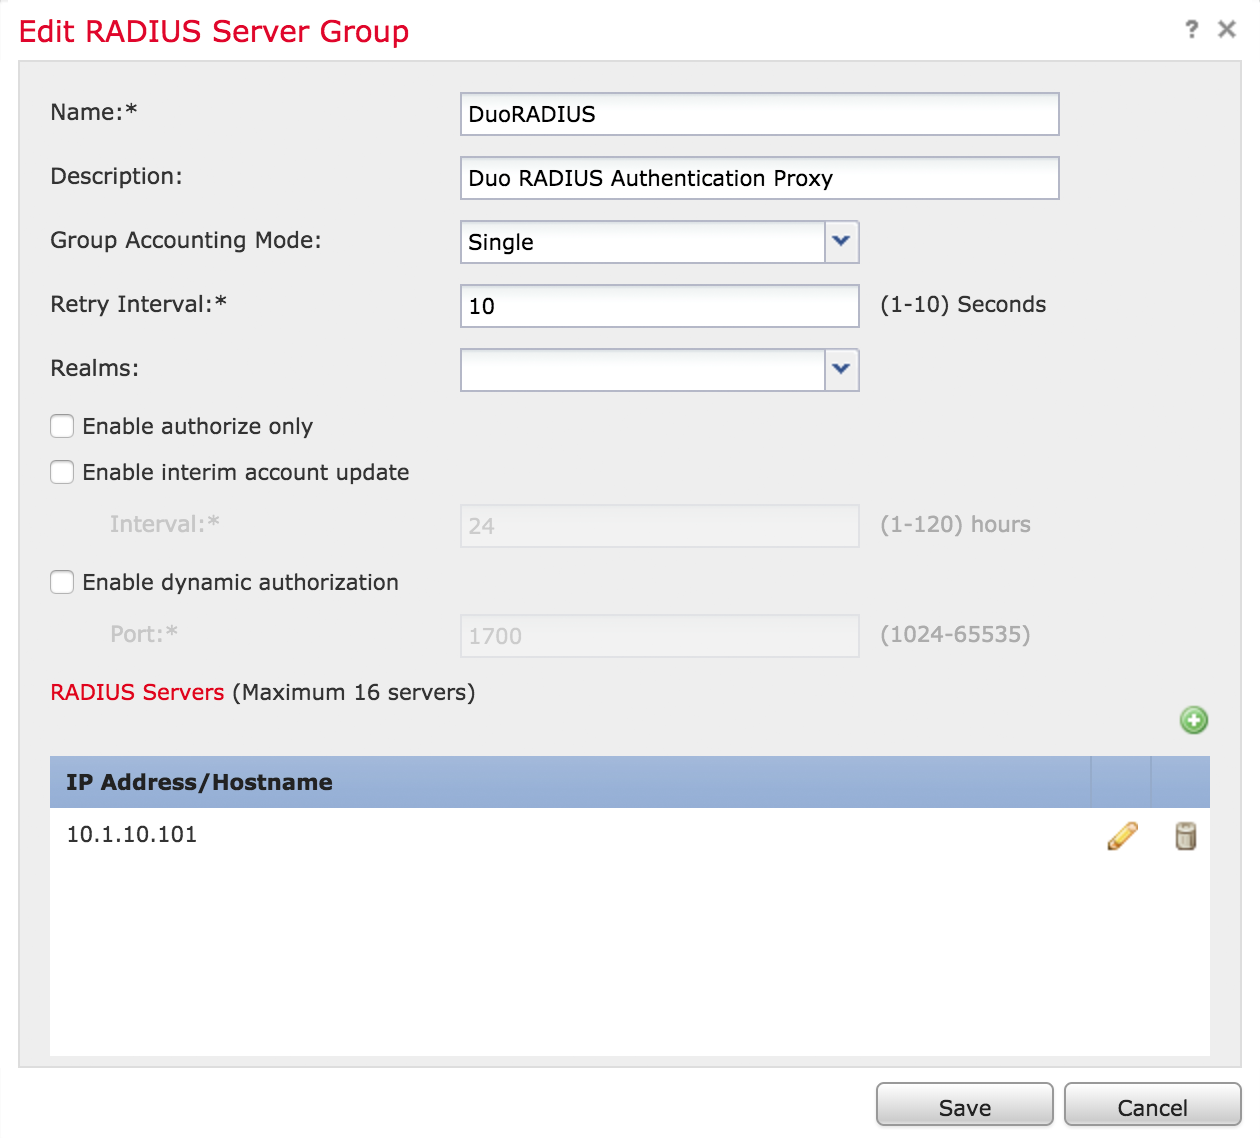 FMC Completed Add RADIUS Server Group Form